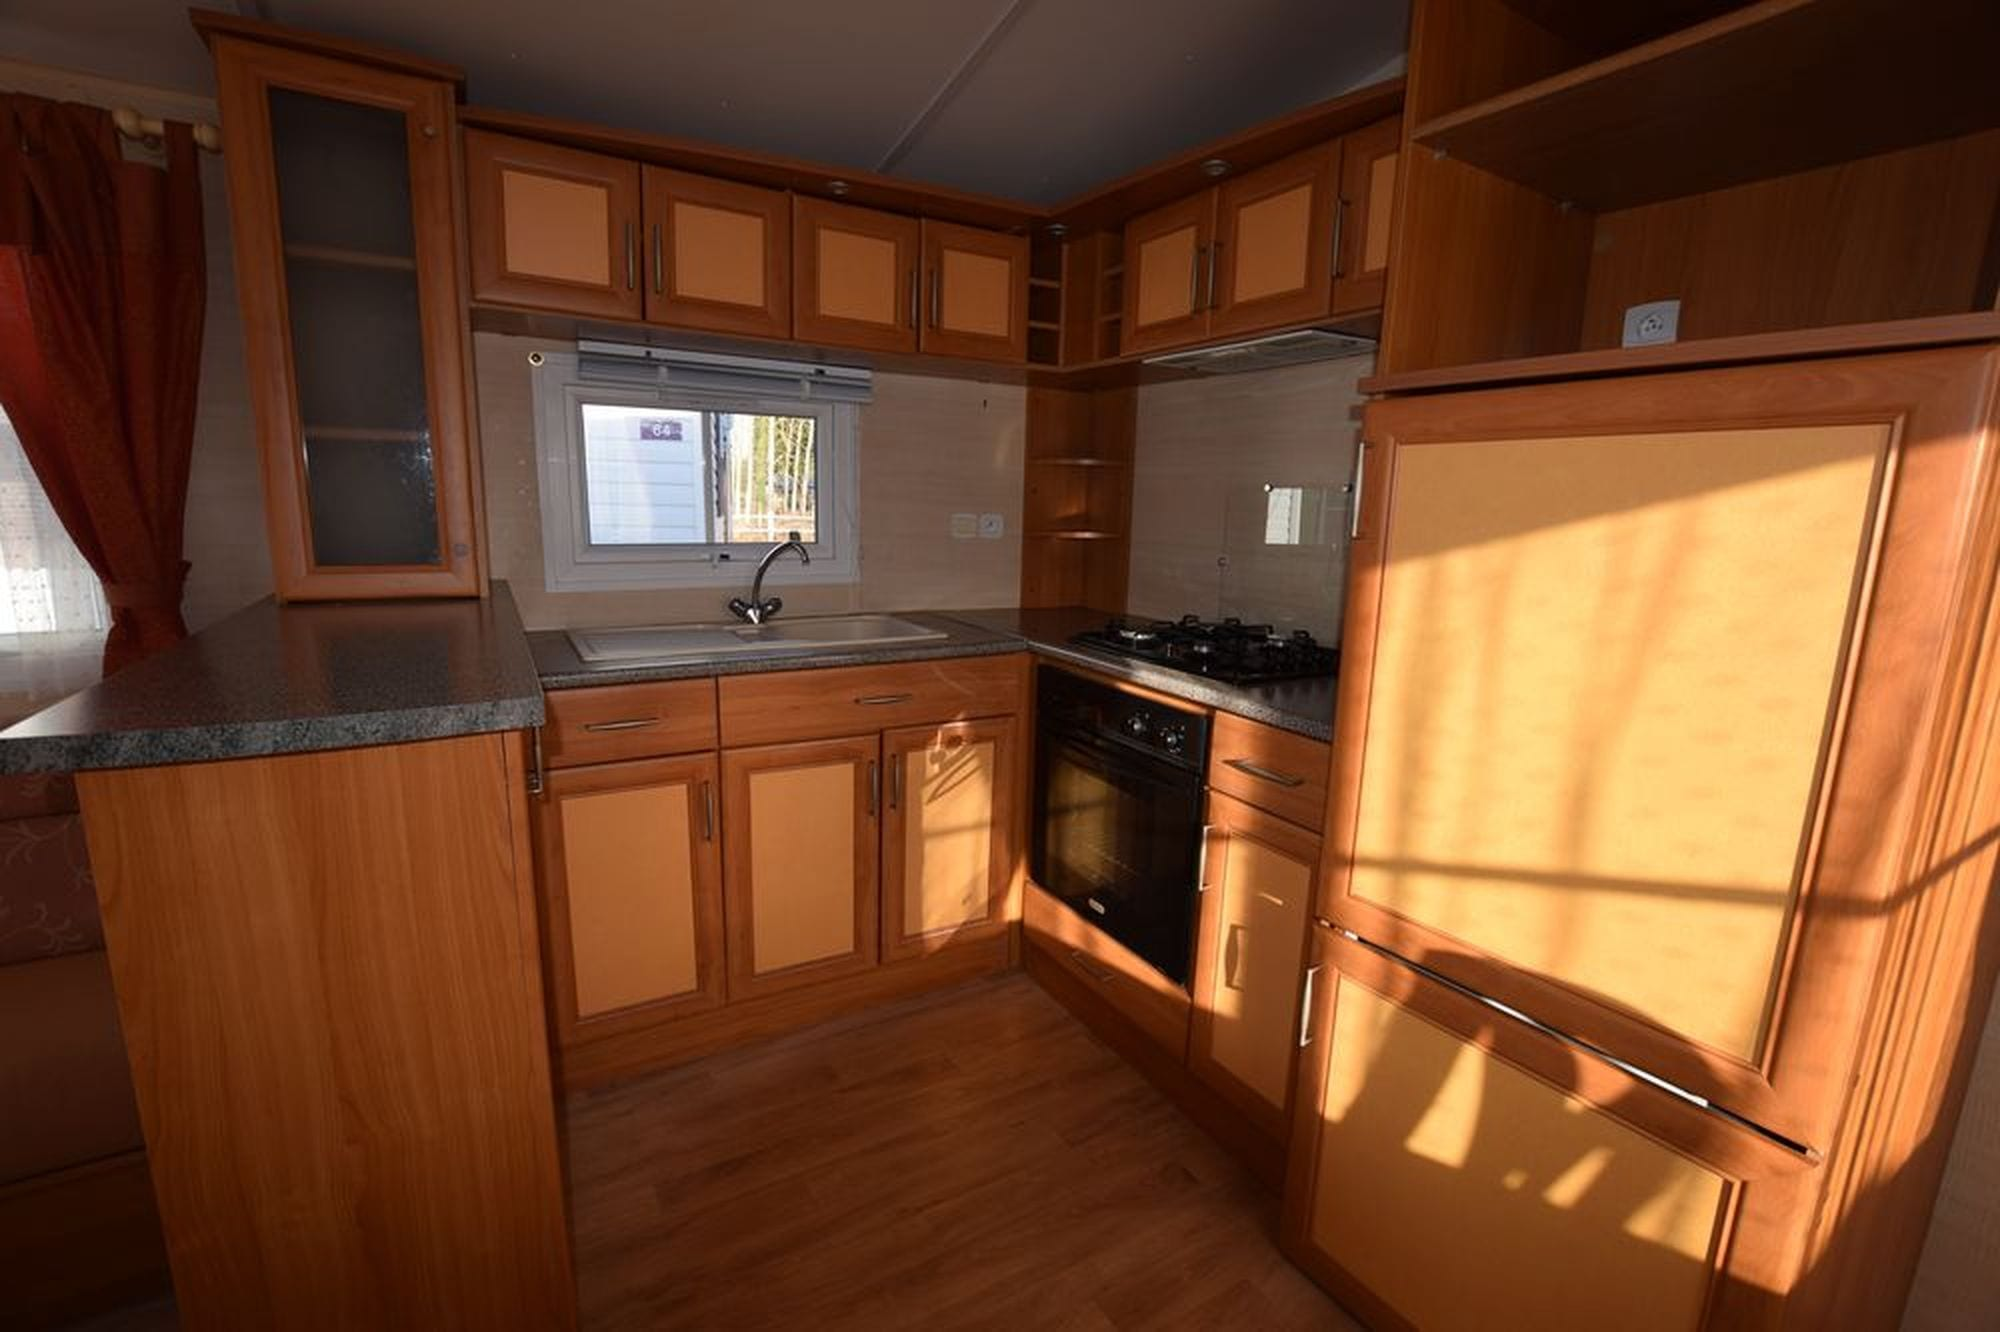 Meuble Année 60 Rapidhome Harmony - Mobil Home D'occasion - 11 500€ - Zen